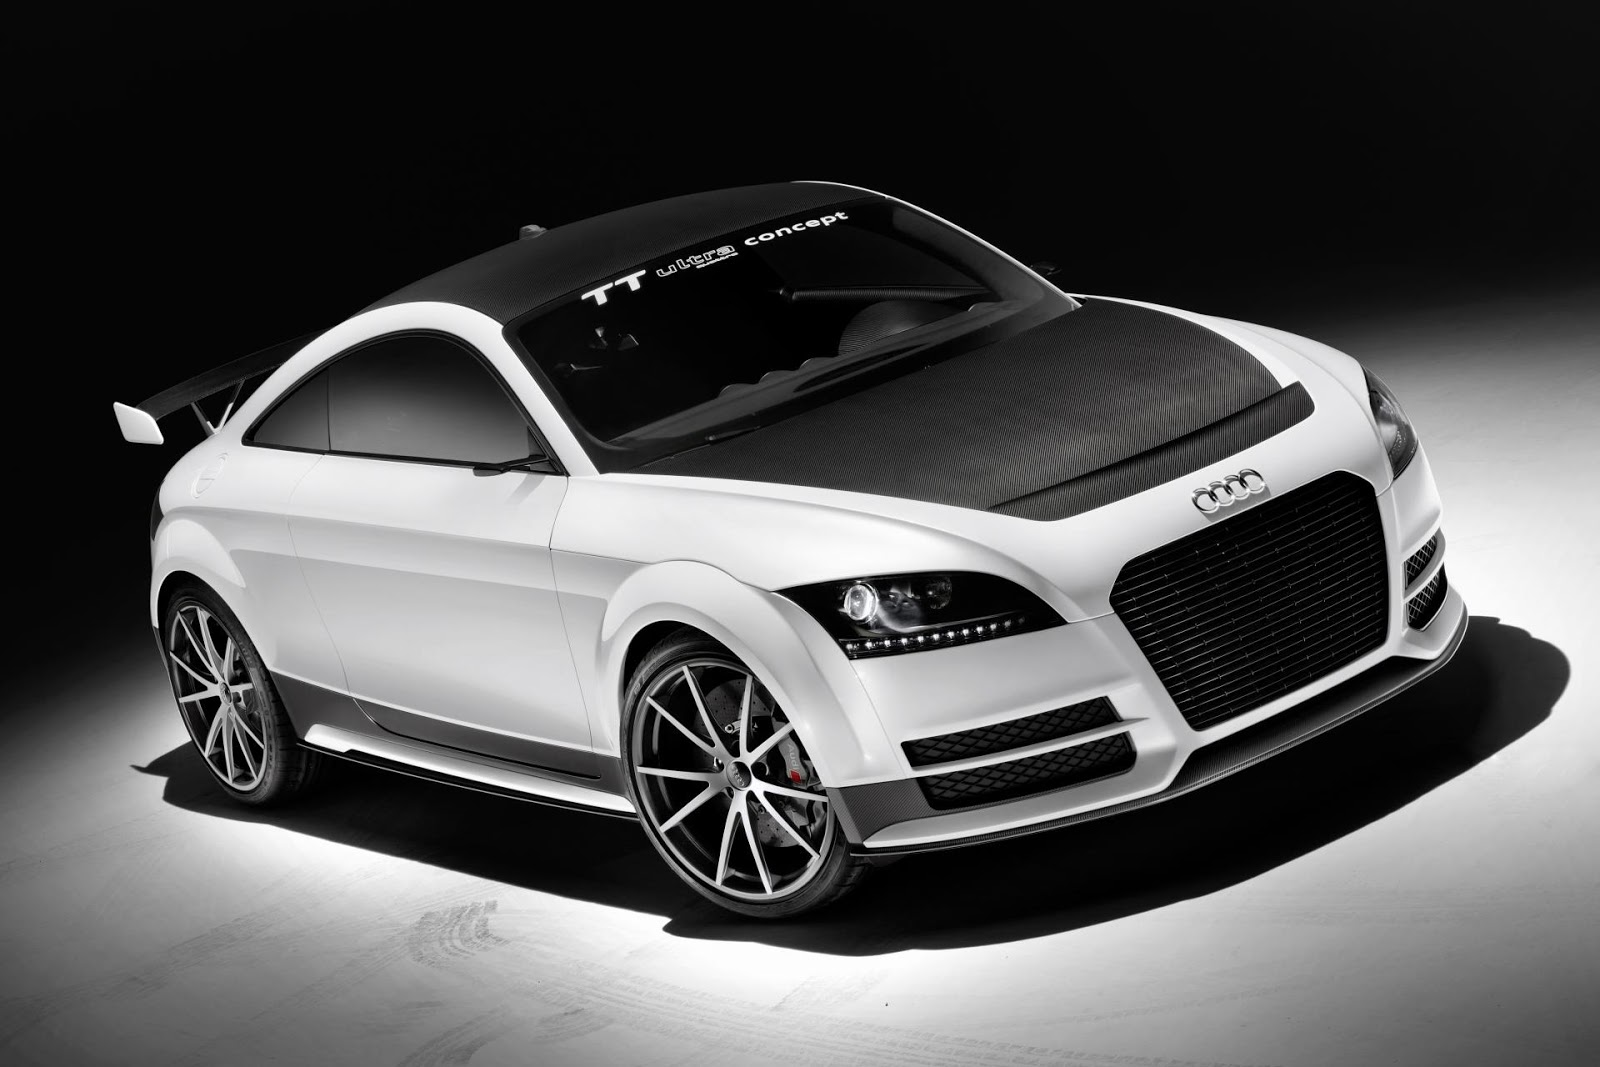 audi tt ultra quattro concept 2013 hottest car wallpapers bestgarage. Black Bedroom Furniture Sets. Home Design Ideas